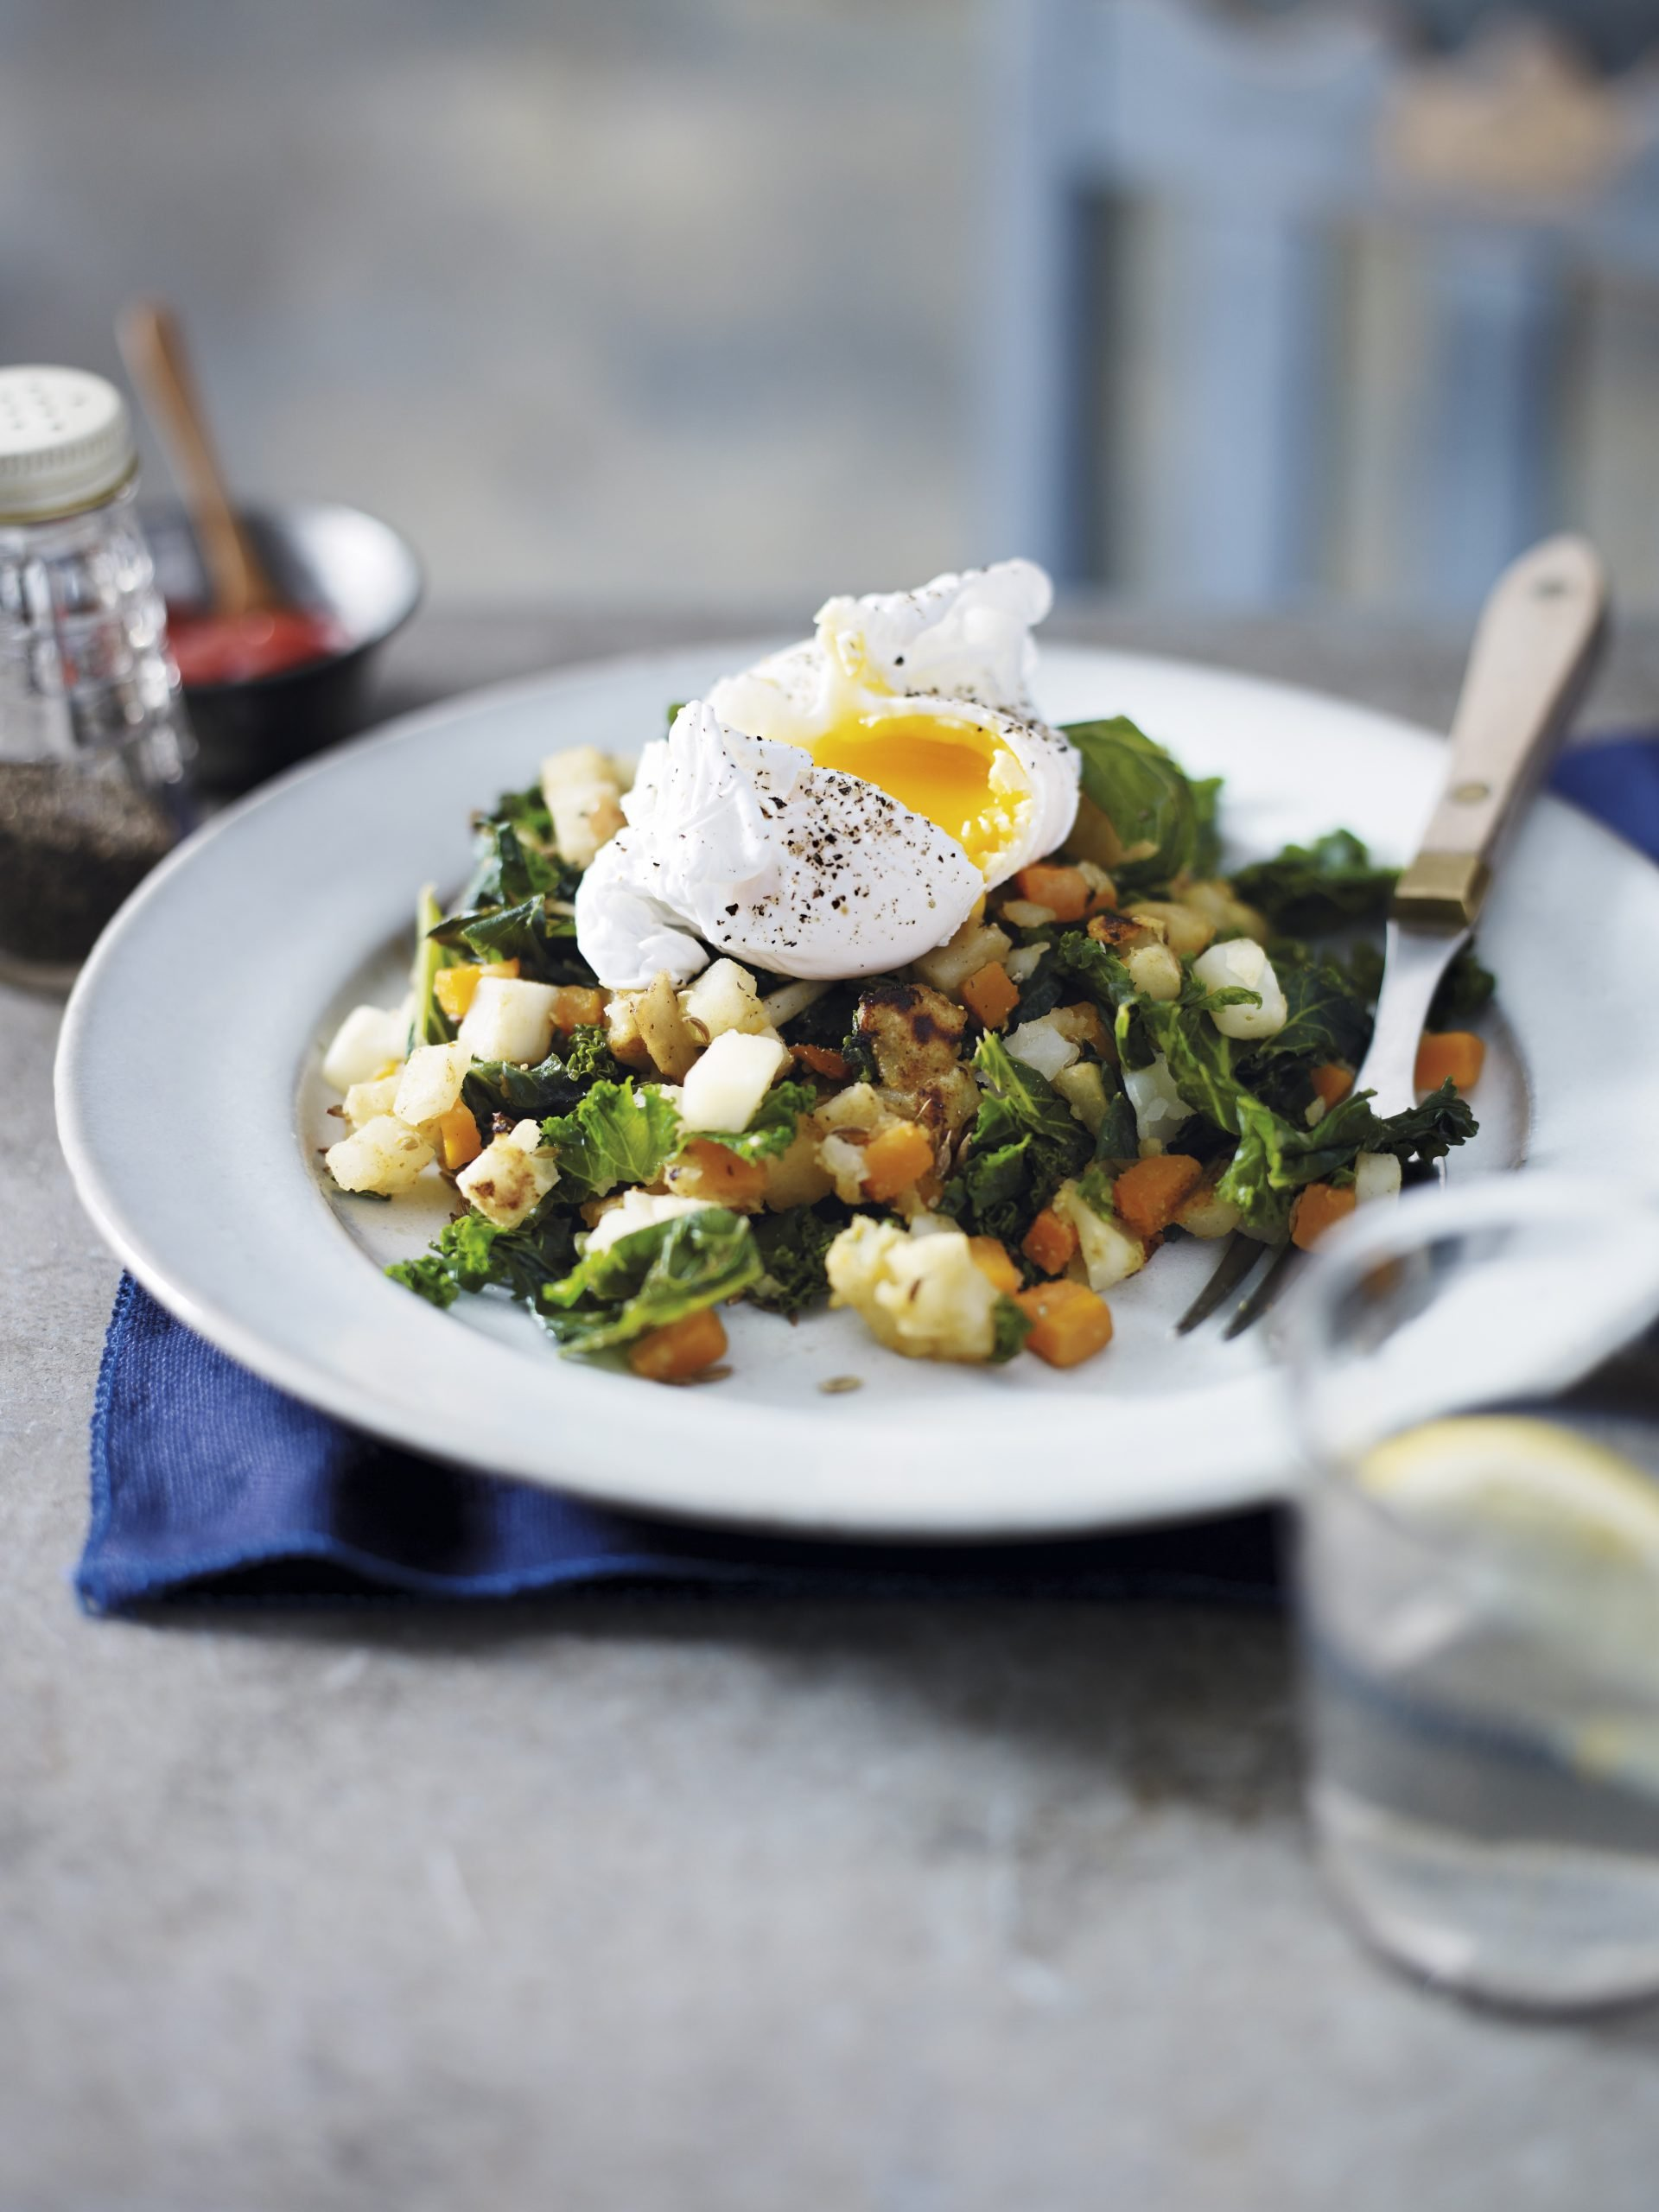 Recipe: Parsnip, Carrot & Kale Hash with Poached Eggs